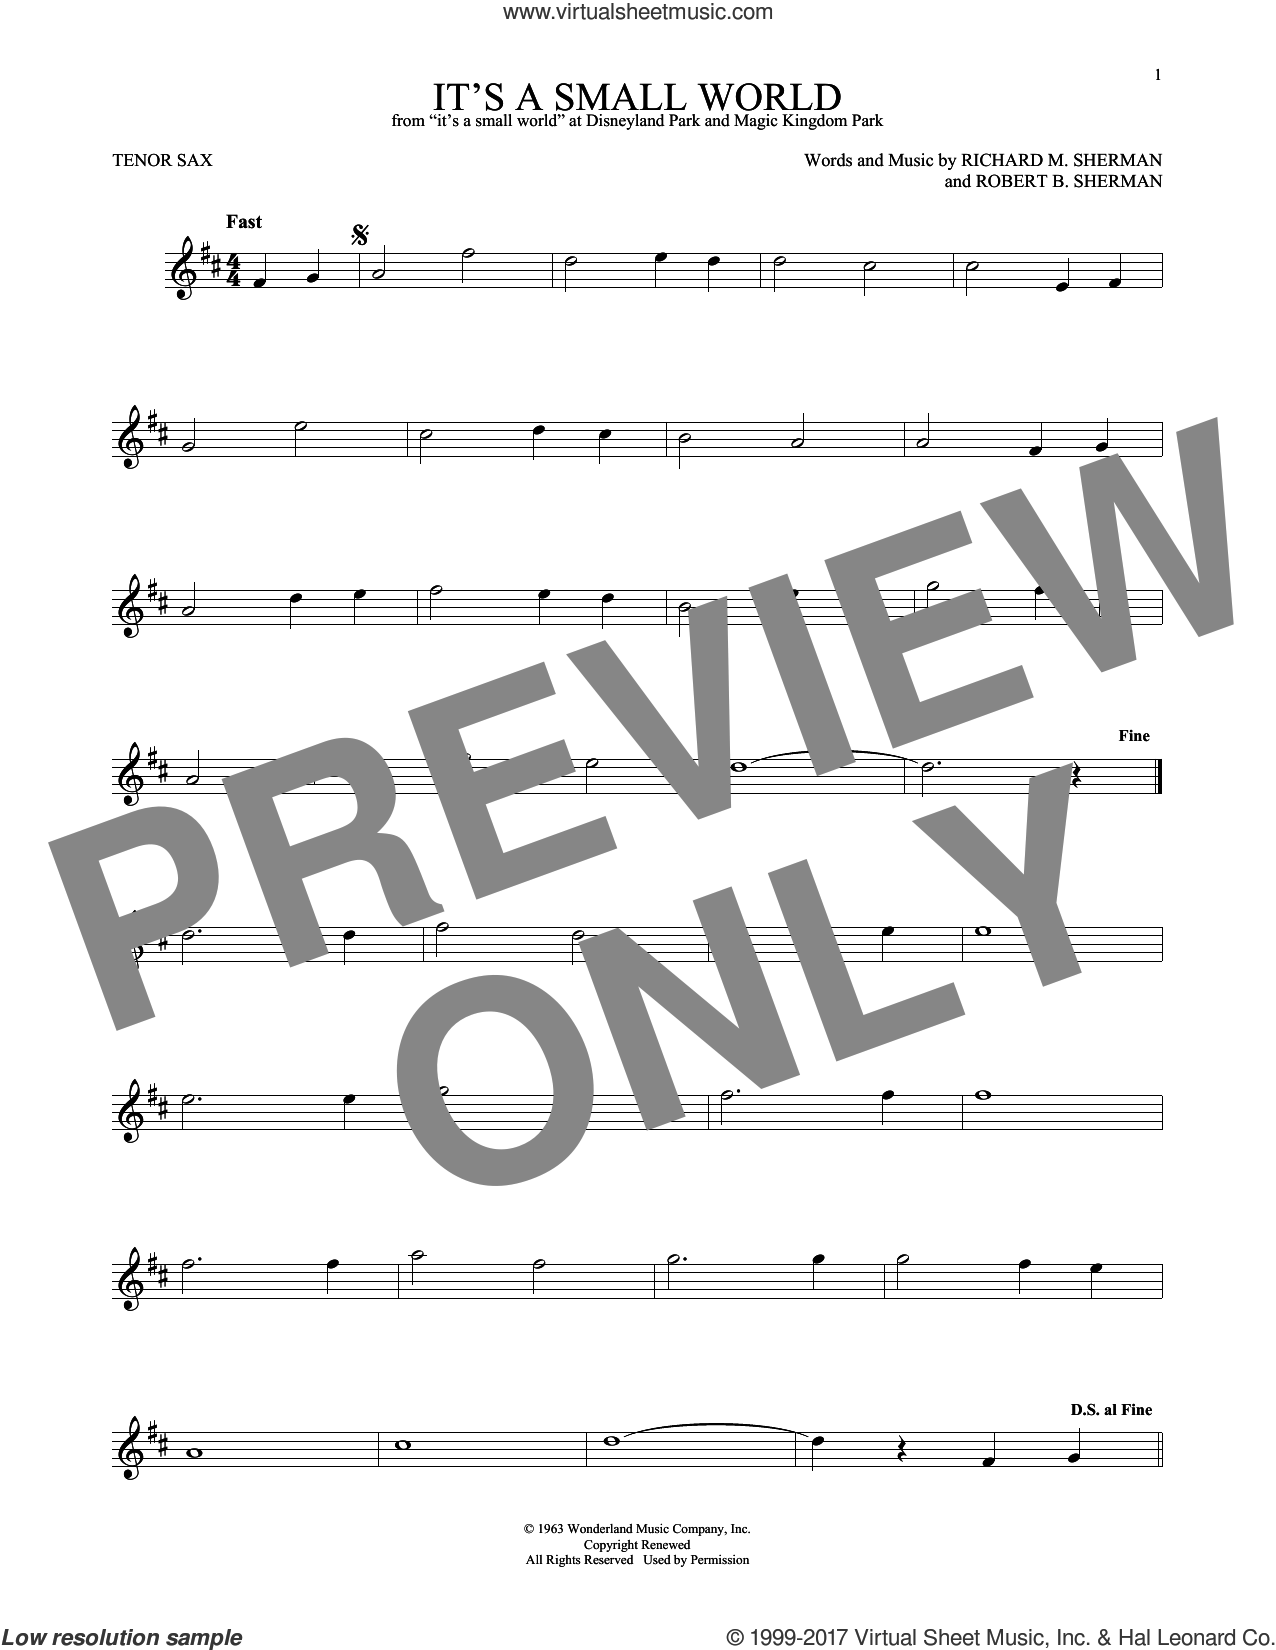 It's A Small World sheet music for tenor saxophone solo by Richard M. Sherman and Robert B. Sherman, intermediate skill level